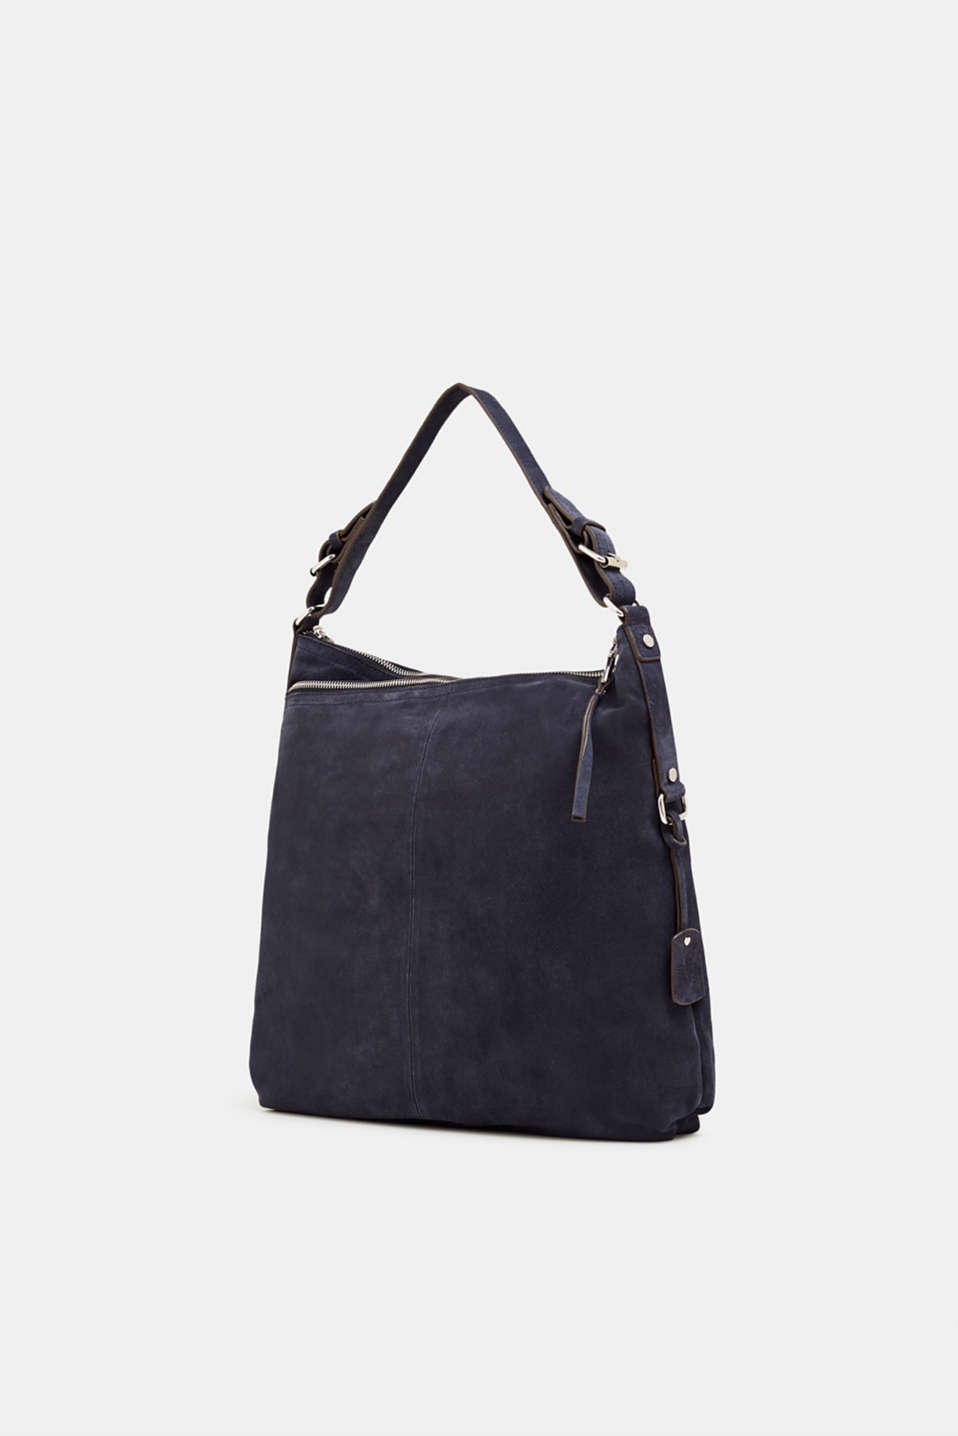 Leather hobo bag, NAVY, detail image number 2